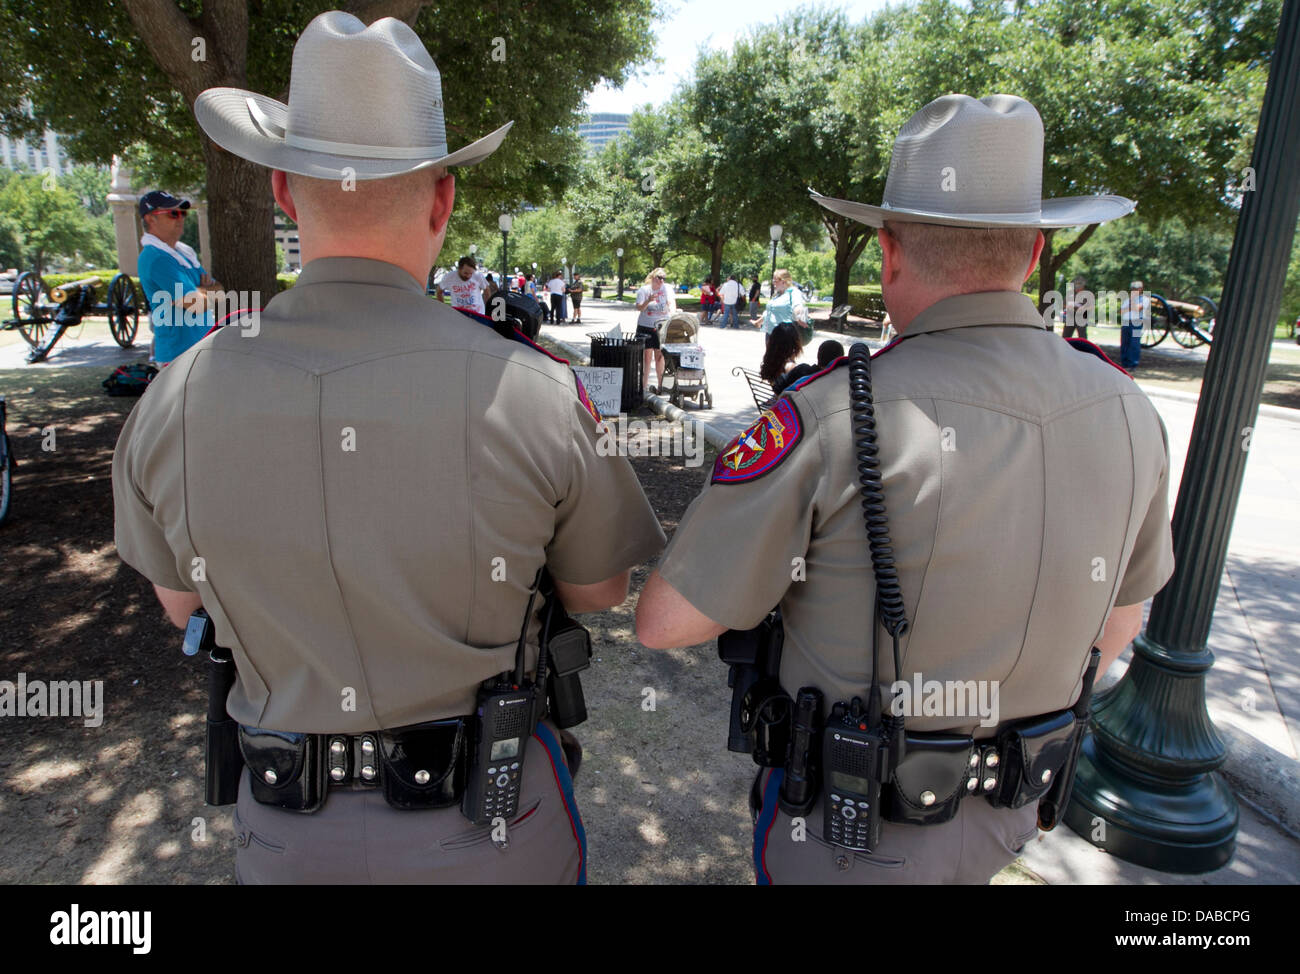 Safety officers monitor crowds at the Texas Capitol as politicians consider  new laws restricting abortions an women Stock Photo